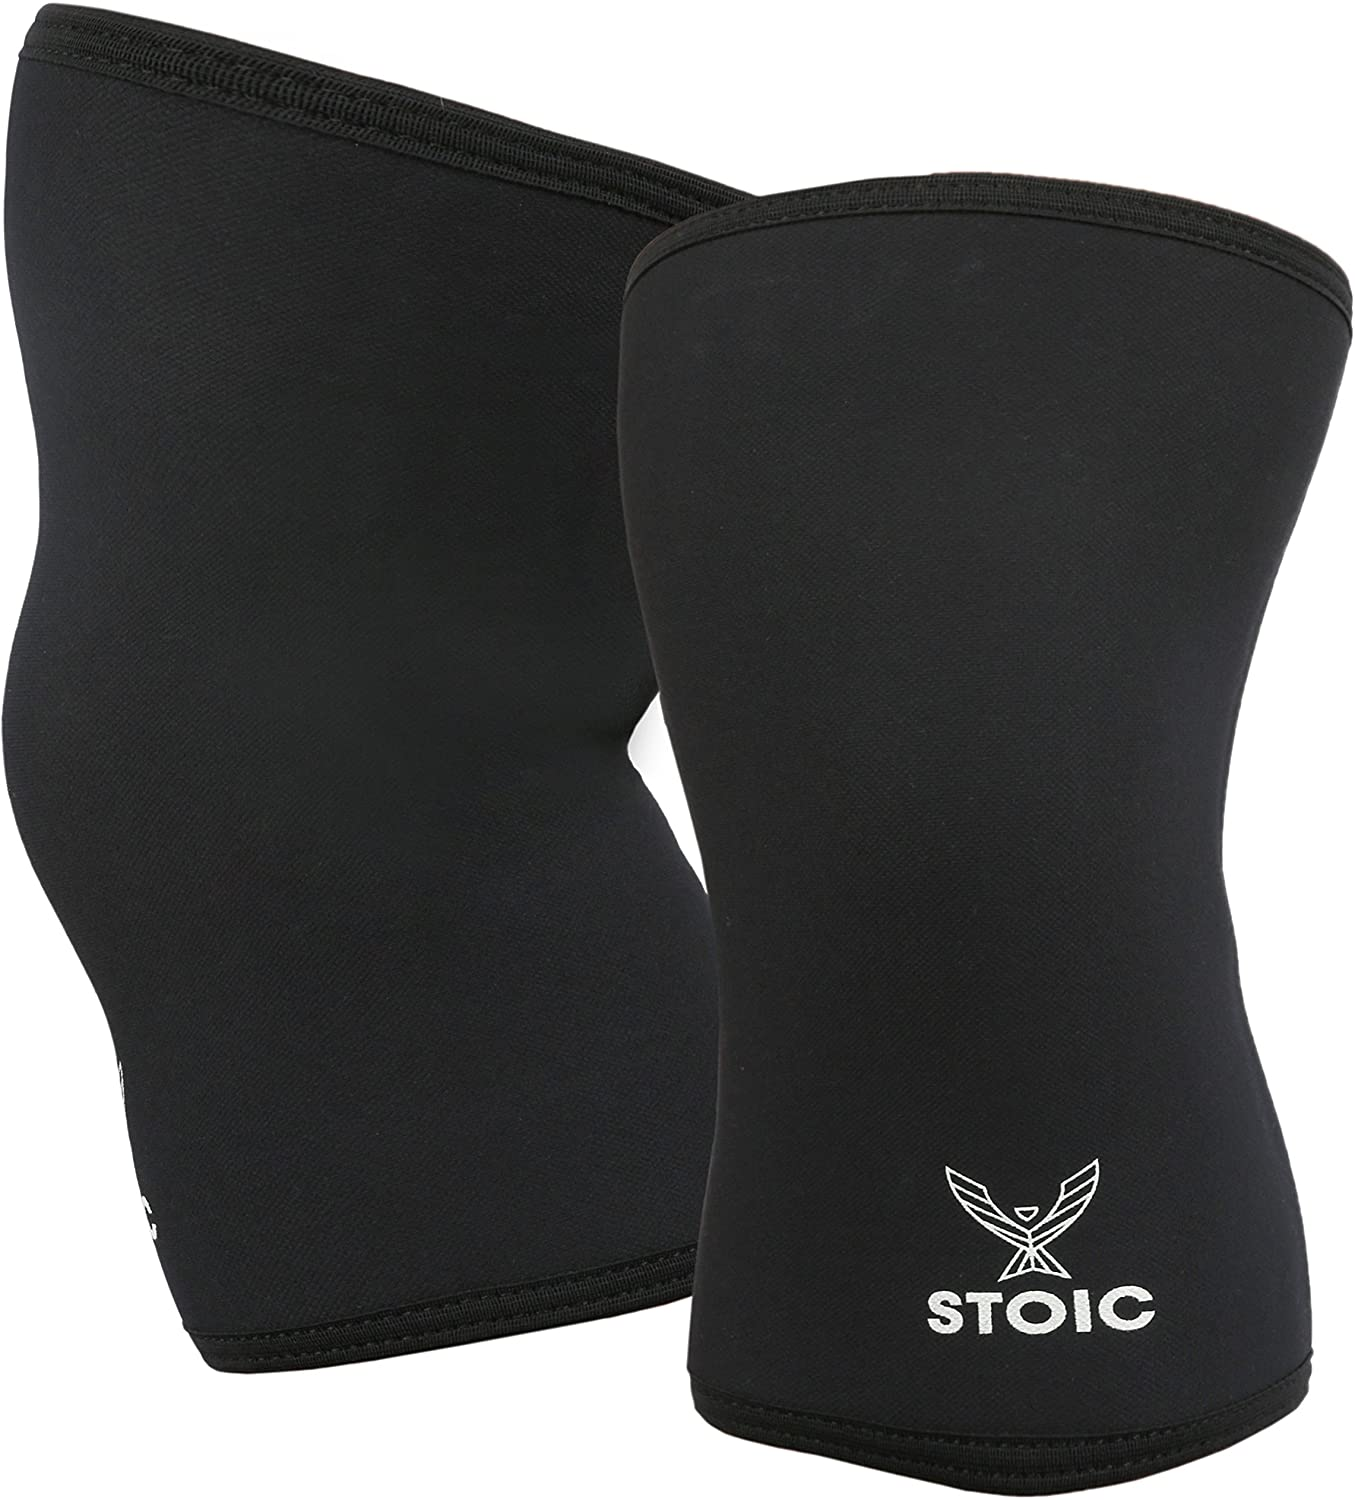 Stoic Knee Sleeves for Powerlifting